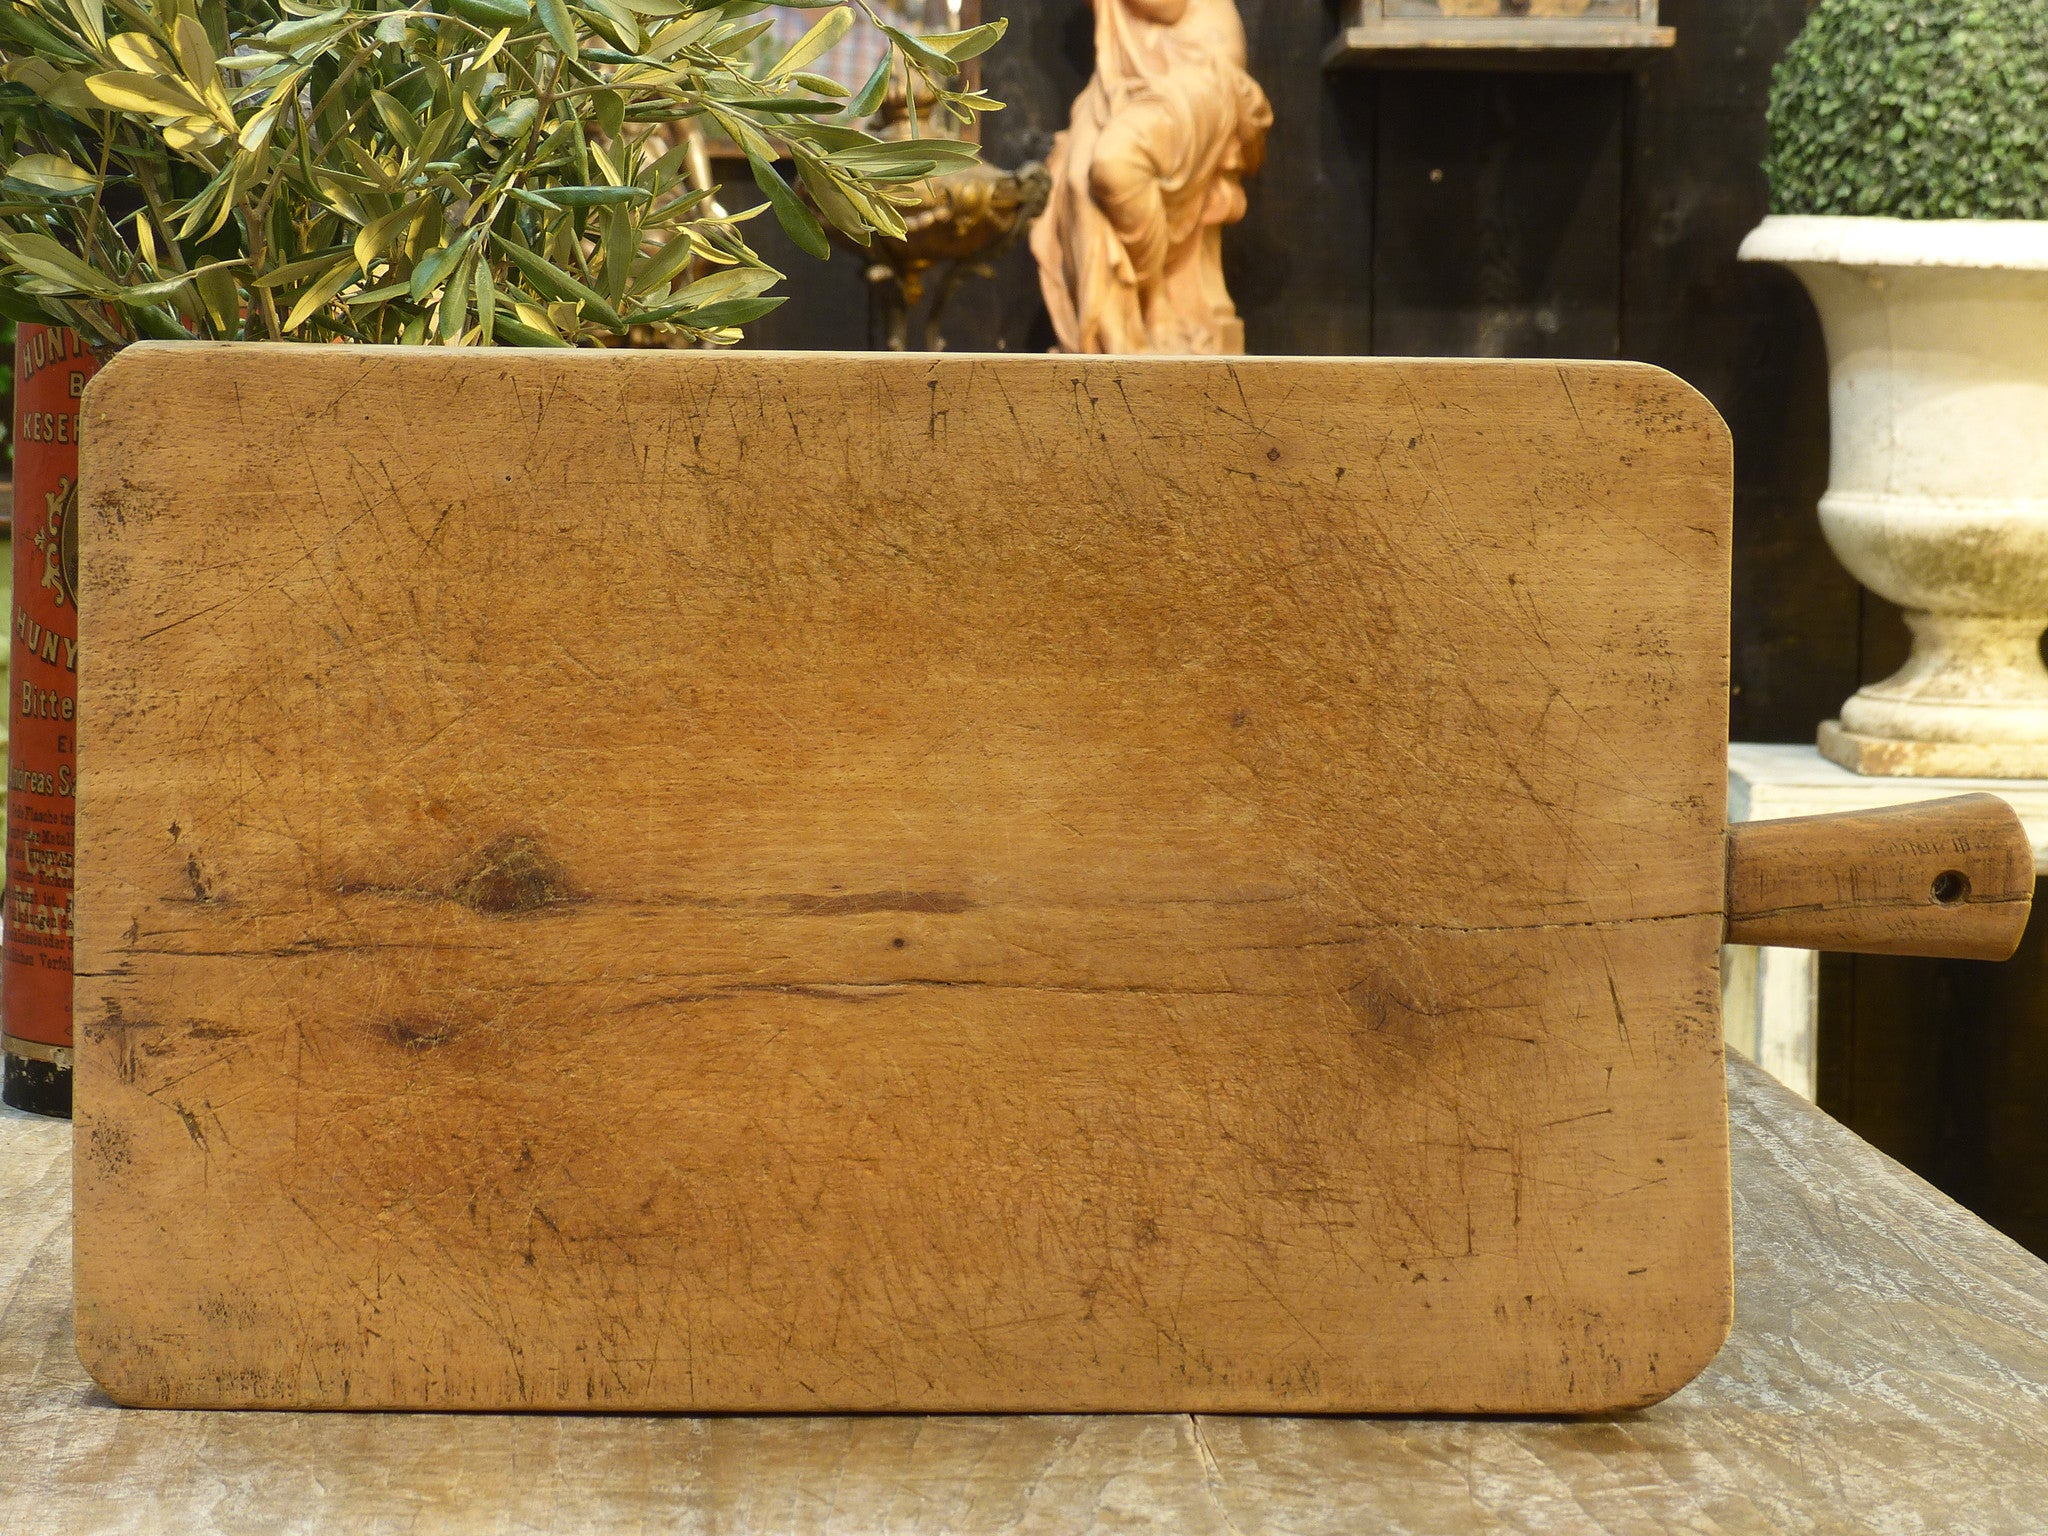 Extra-large rustic French cutting board – 1920's